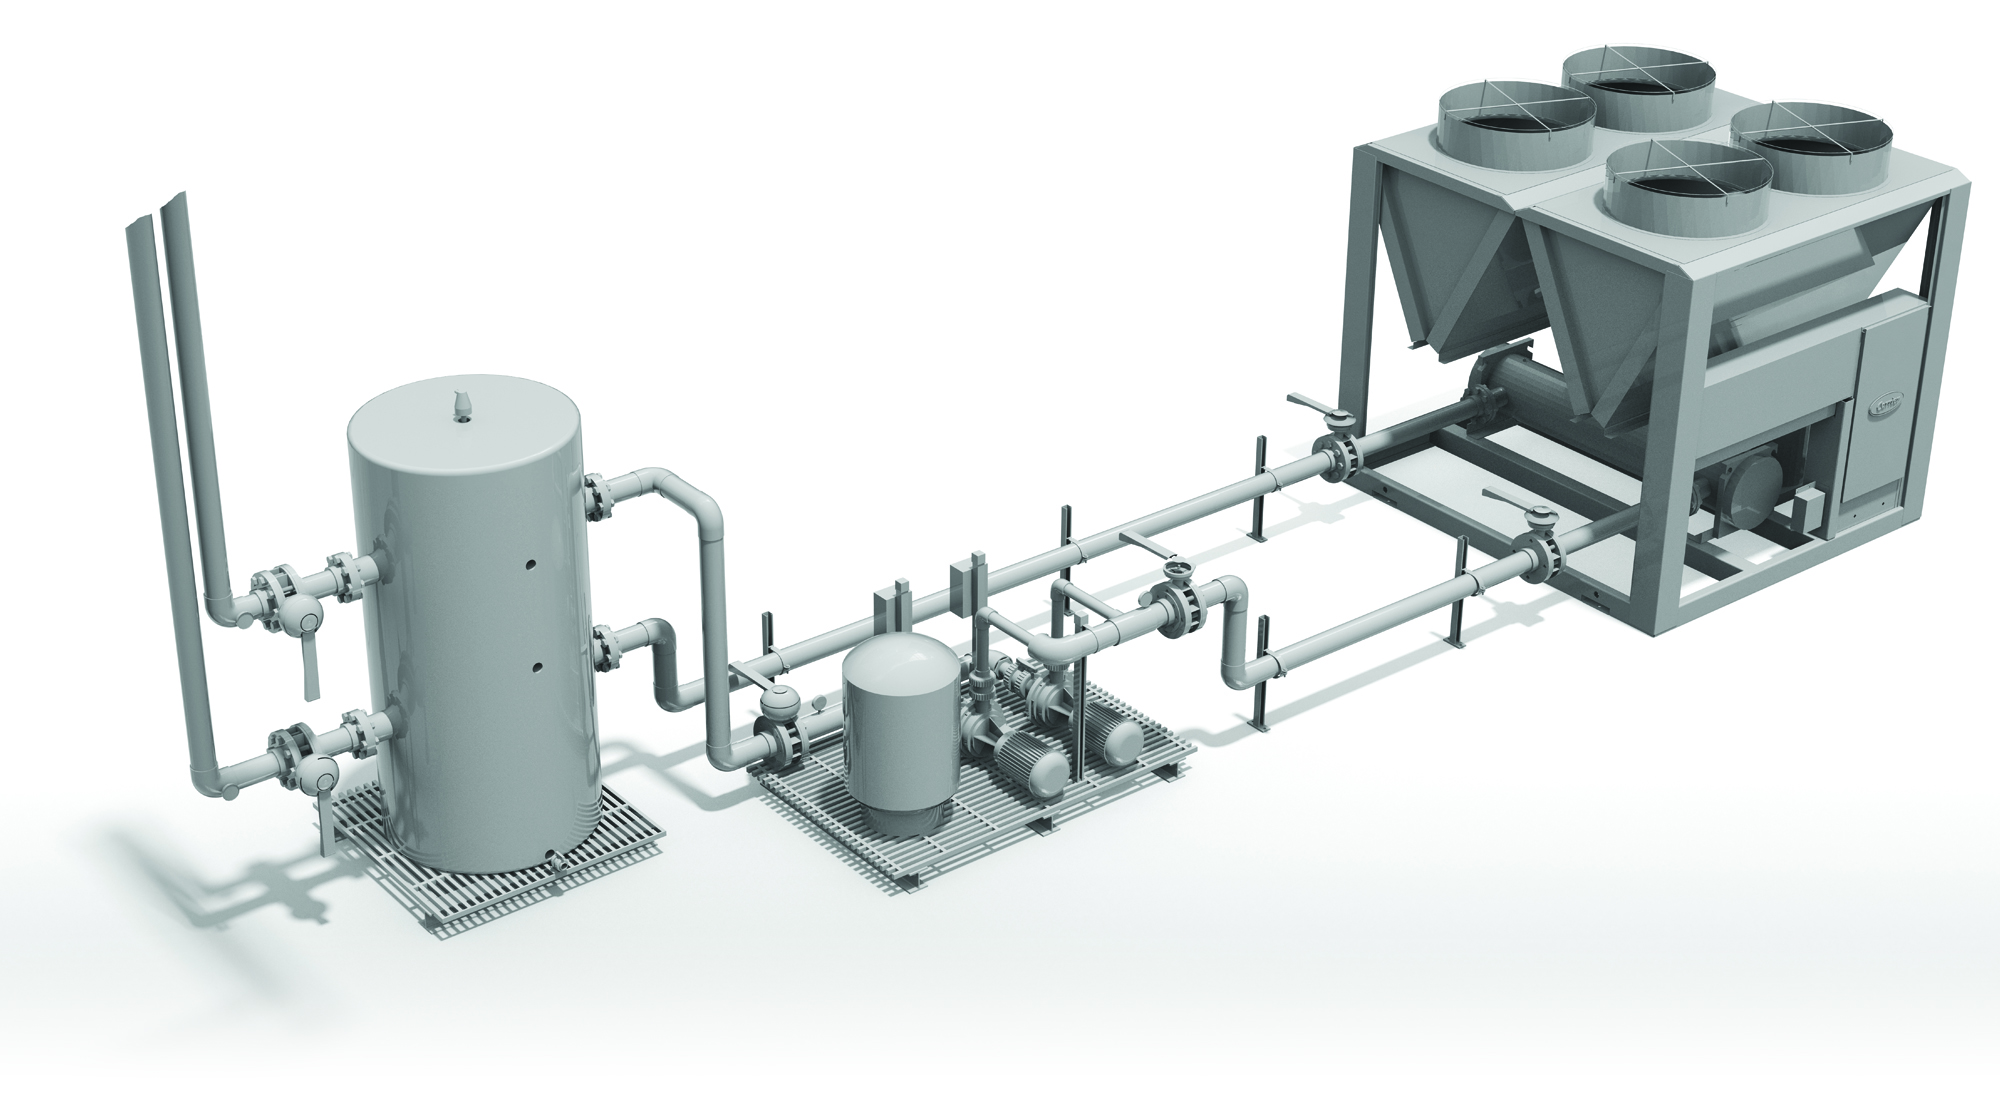 Engineering And Design Services Piping Layout Requirements Delta Sizes Each Individual Equipment Component To Guarantee The System Performs Customer Also Furnishes Installation Diagrams